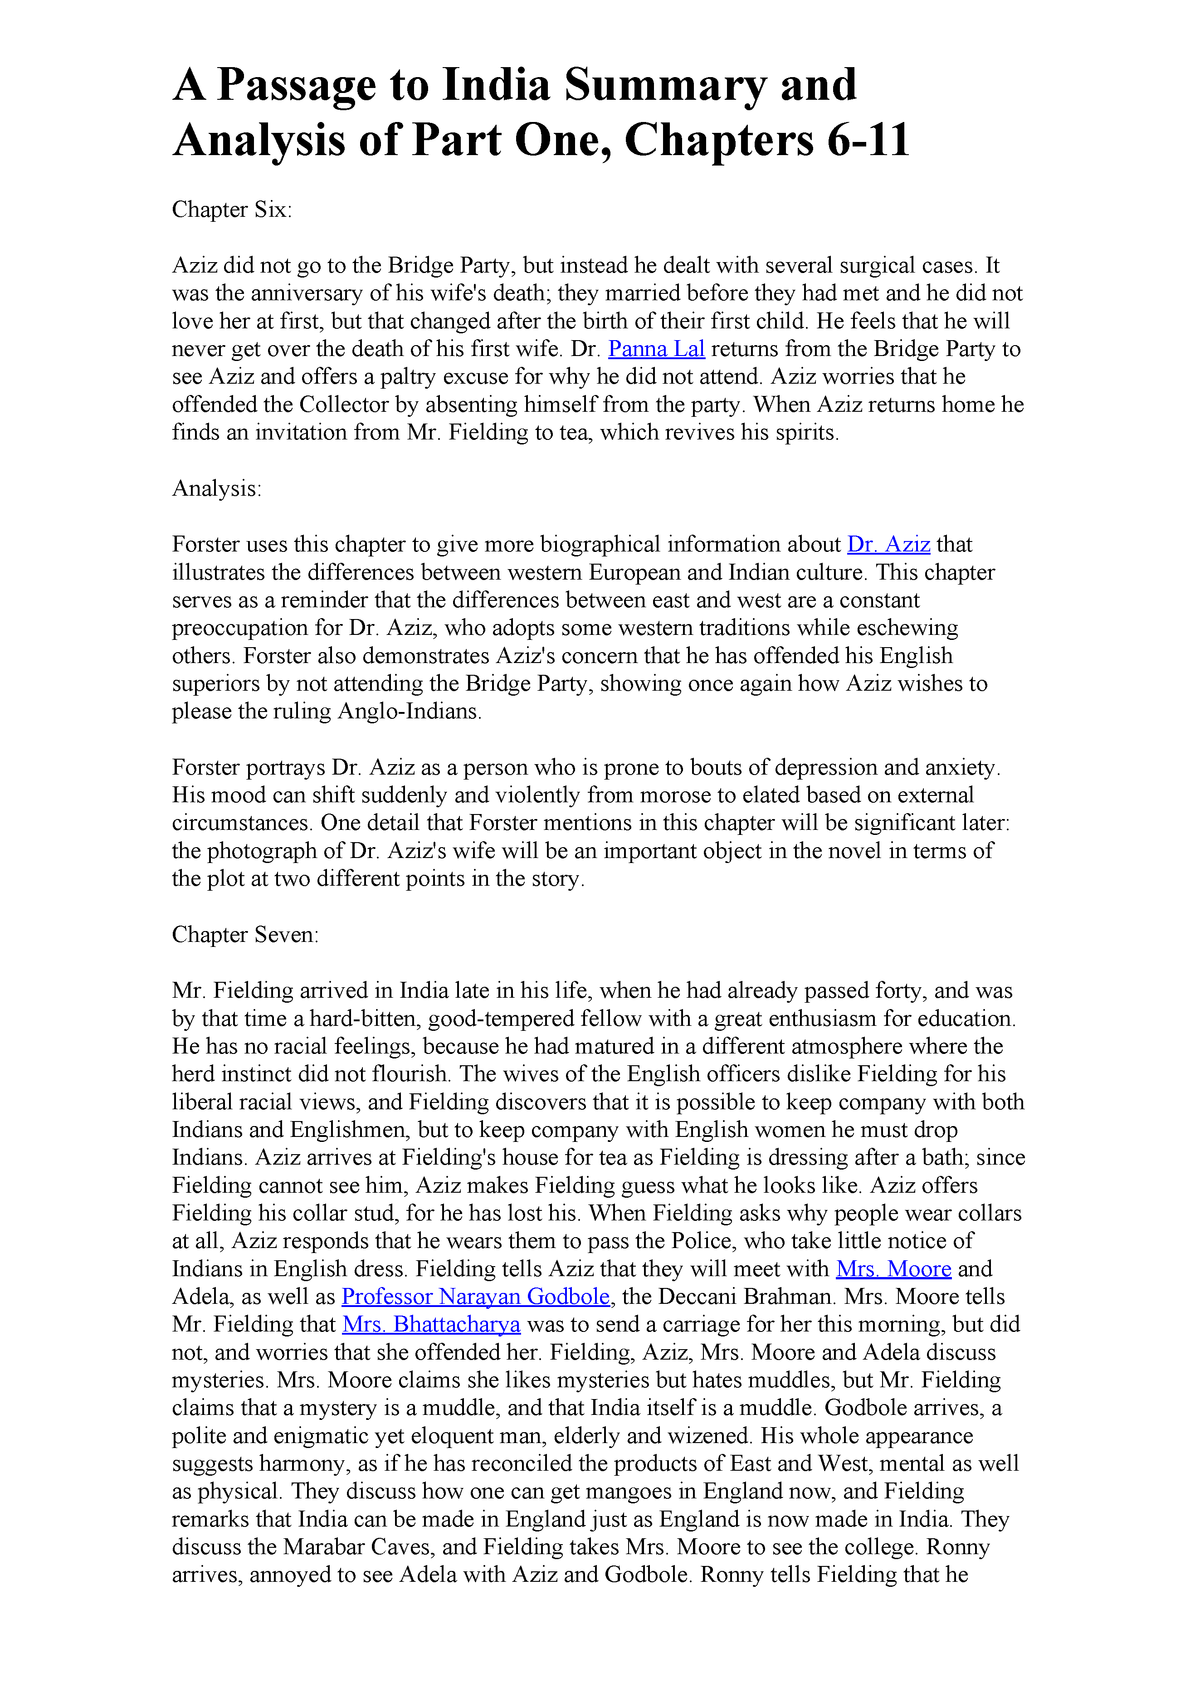 A Passage to India Summary and Analysis of Part One (-11) - - StuDocu